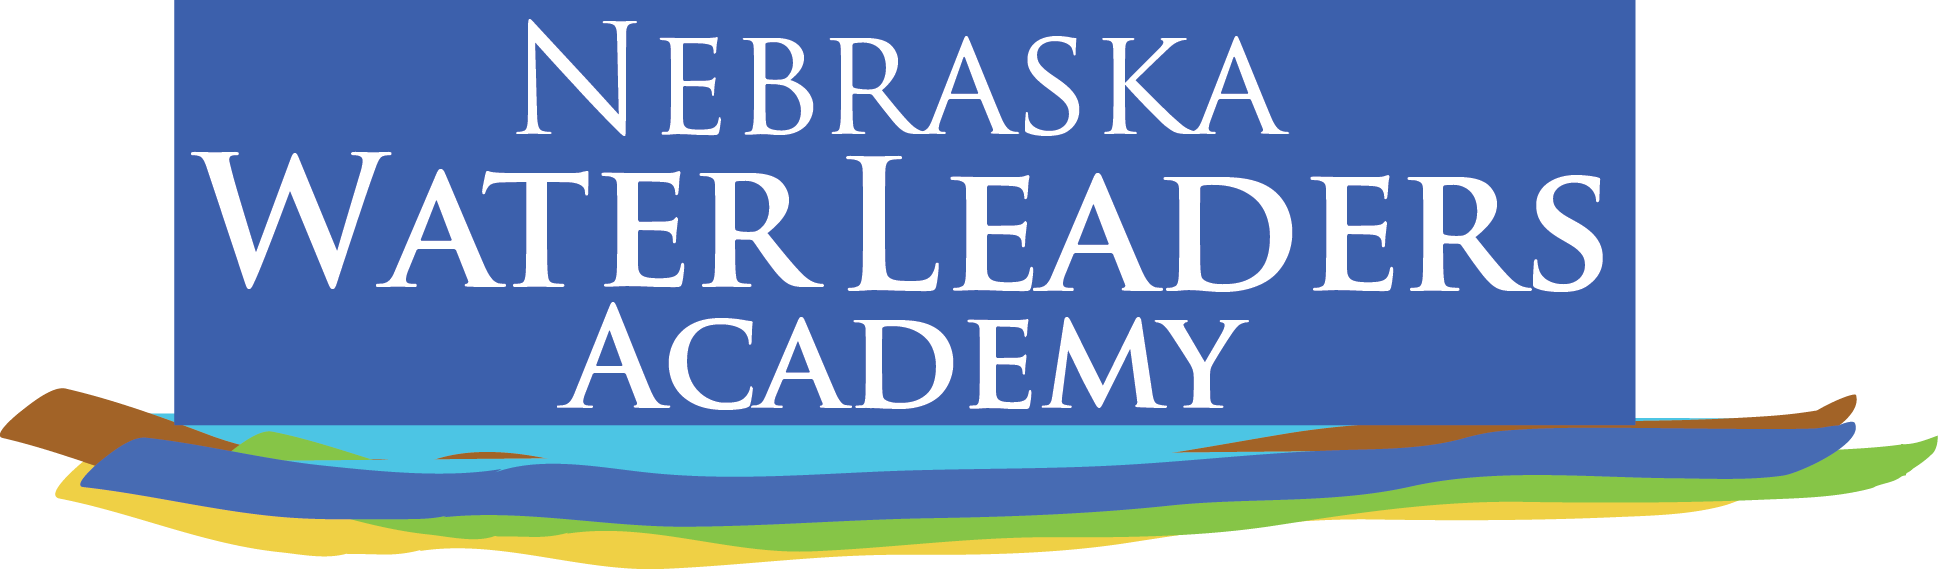 Nebraska Water Leaders Academy